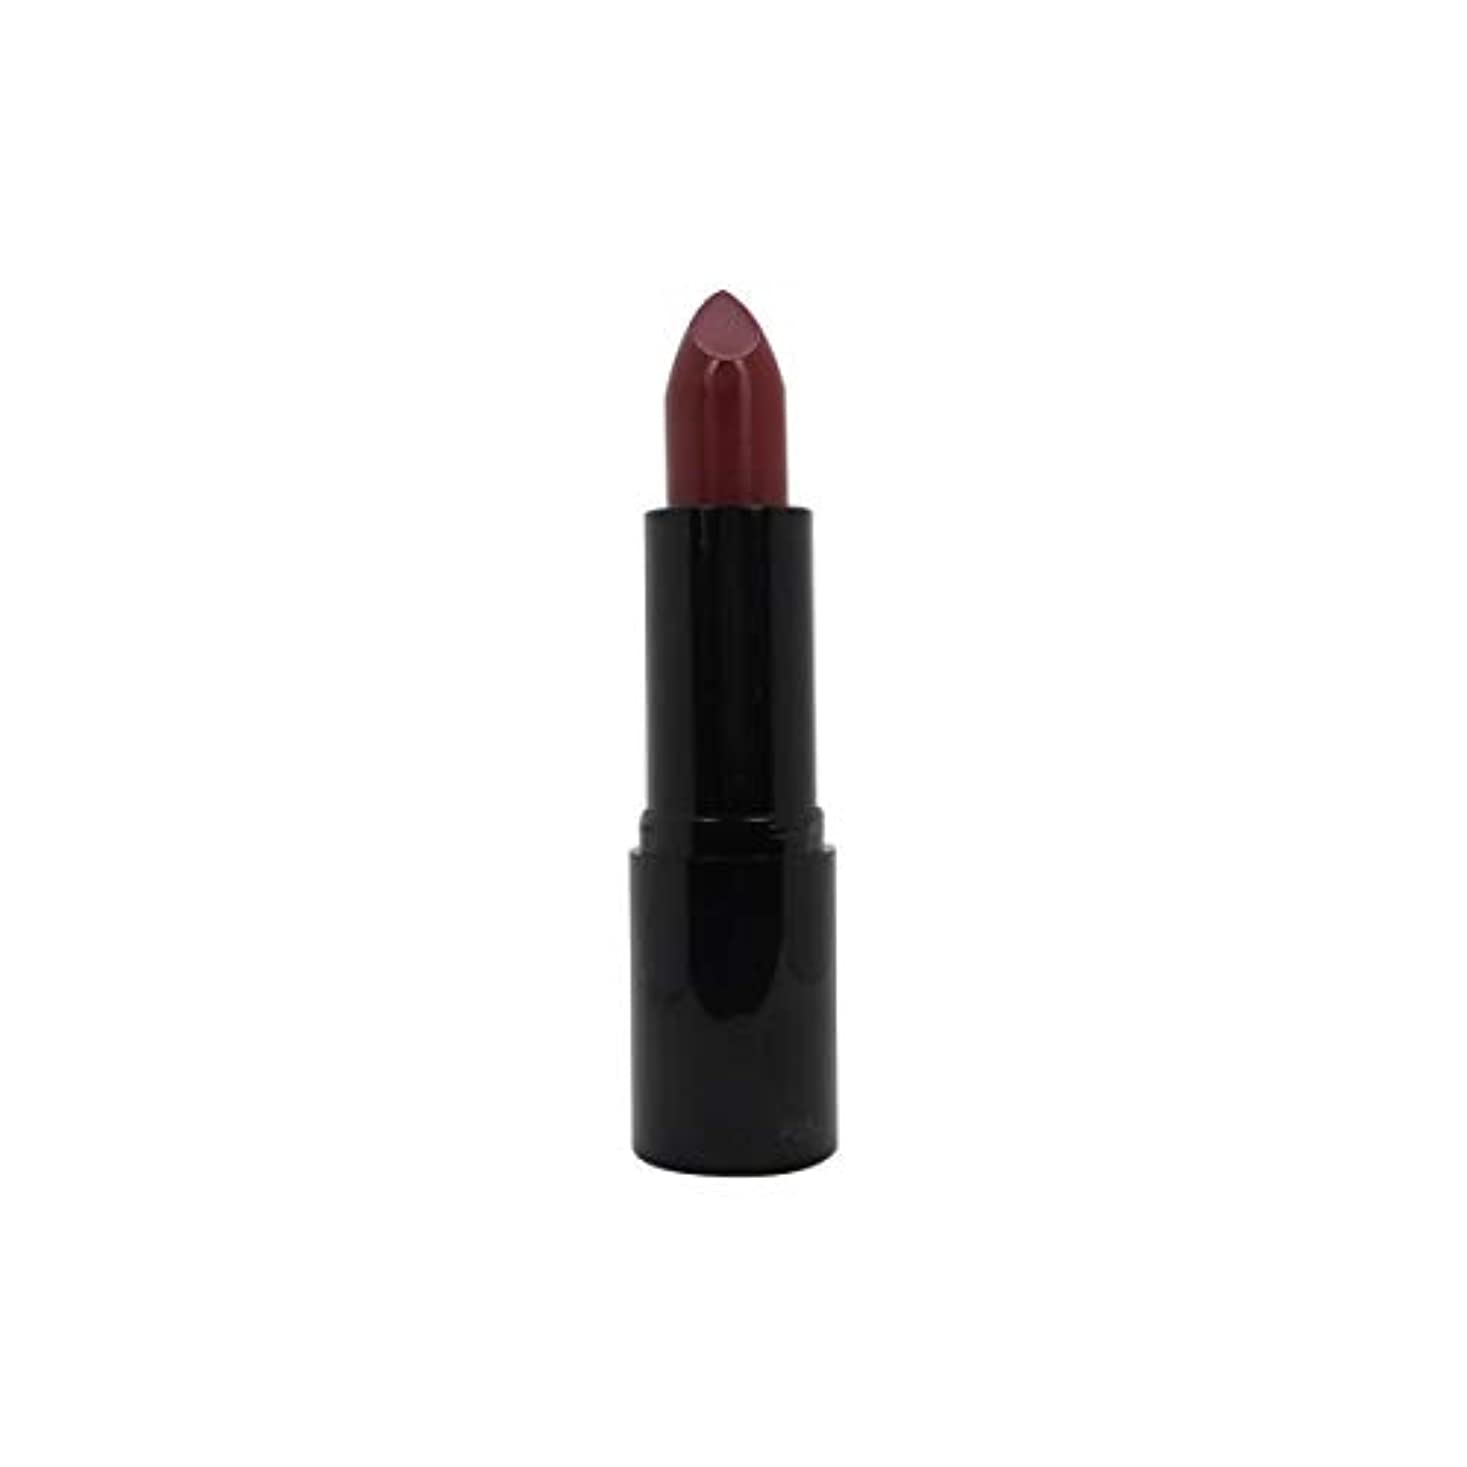 Skinerie The Collection Lipstick 09 Crazy Nuts 3,5g